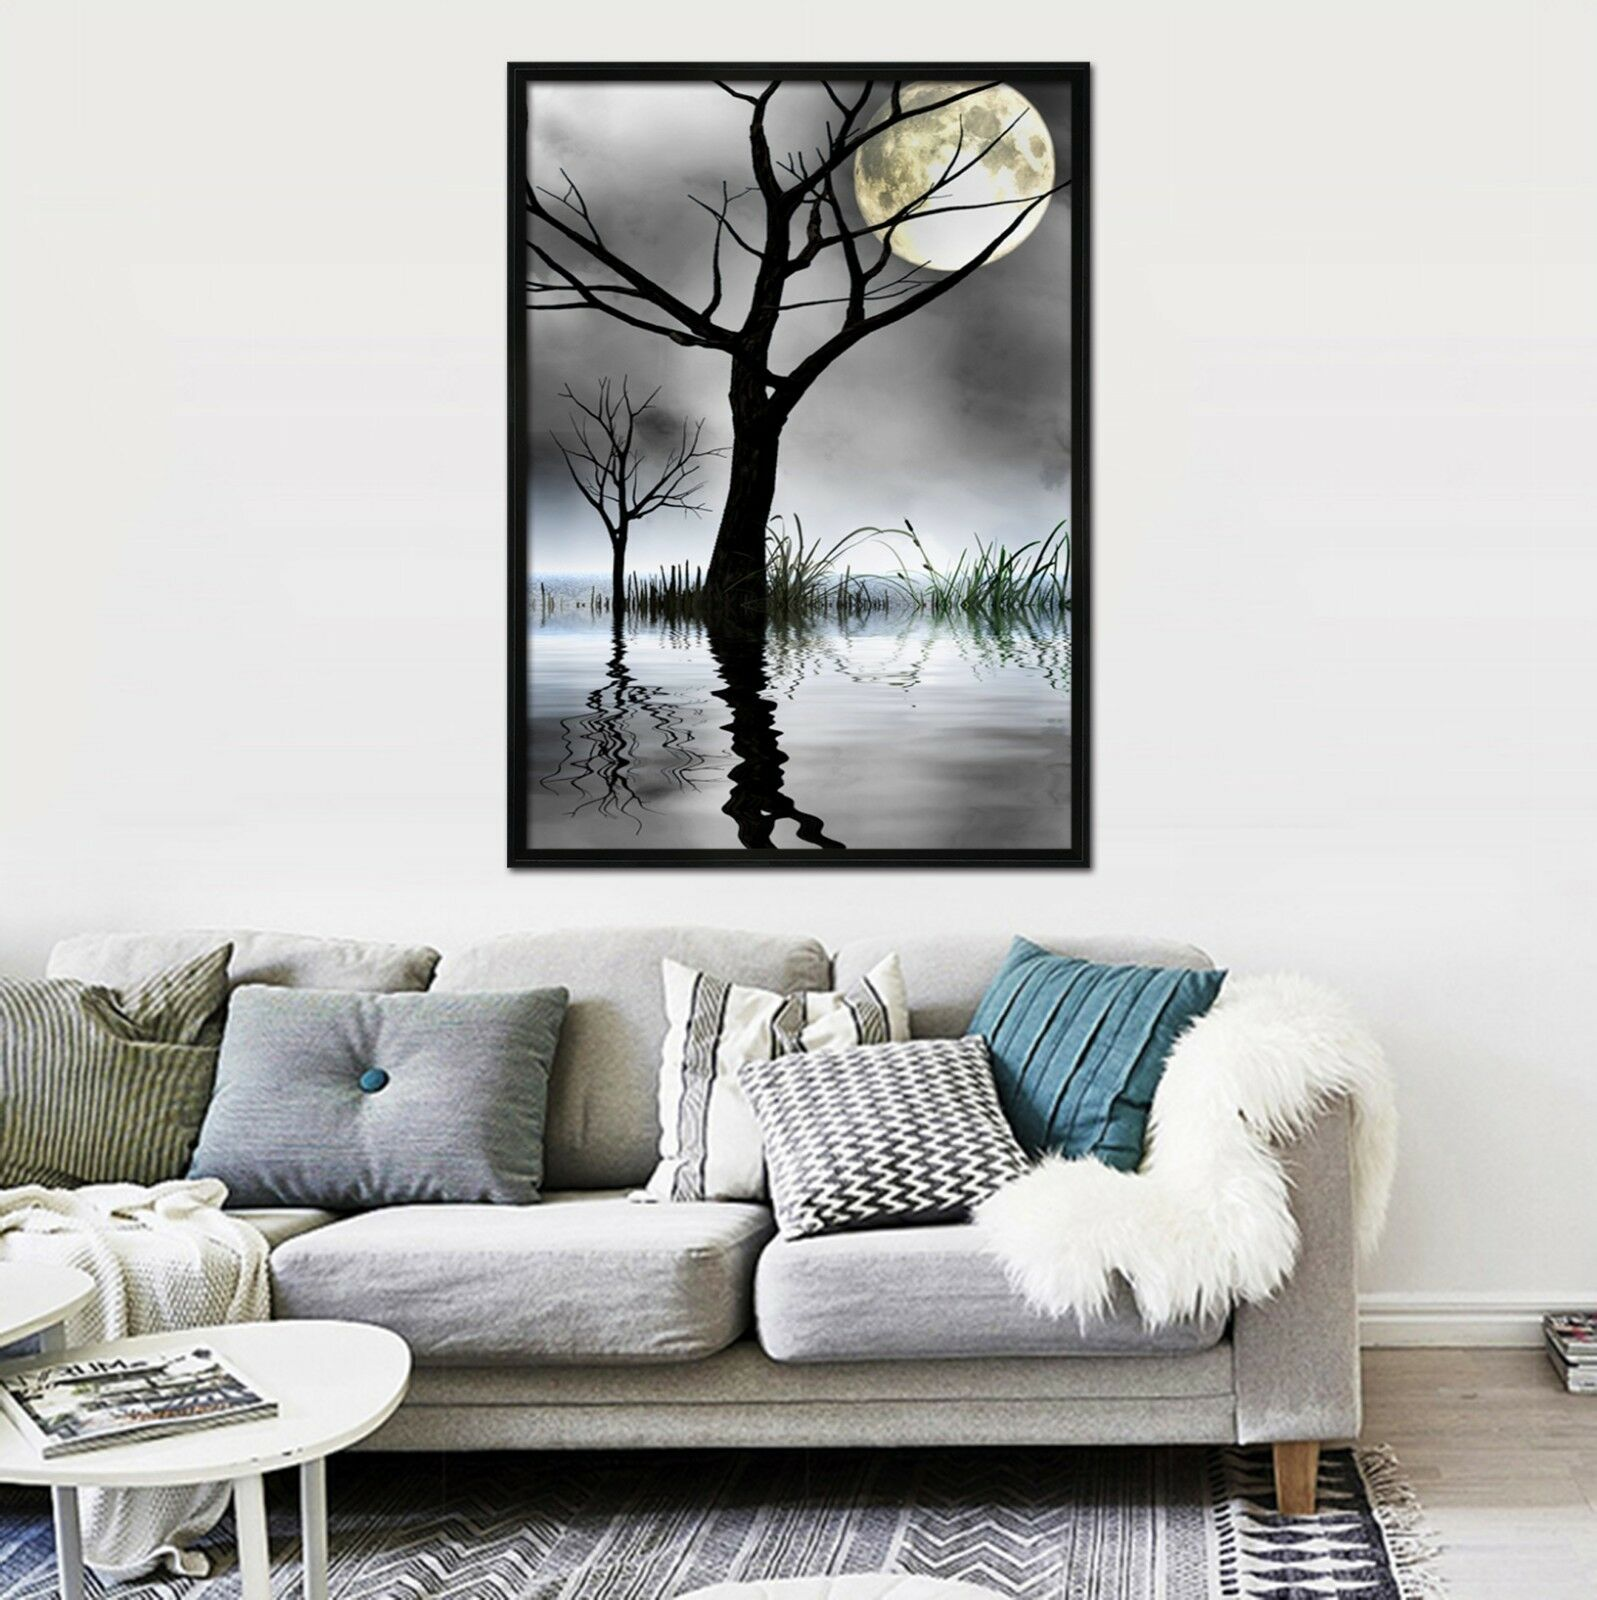 3D Moonlight Tree 675 Fake Framed Poster Home Decor Print Painting Unique Art